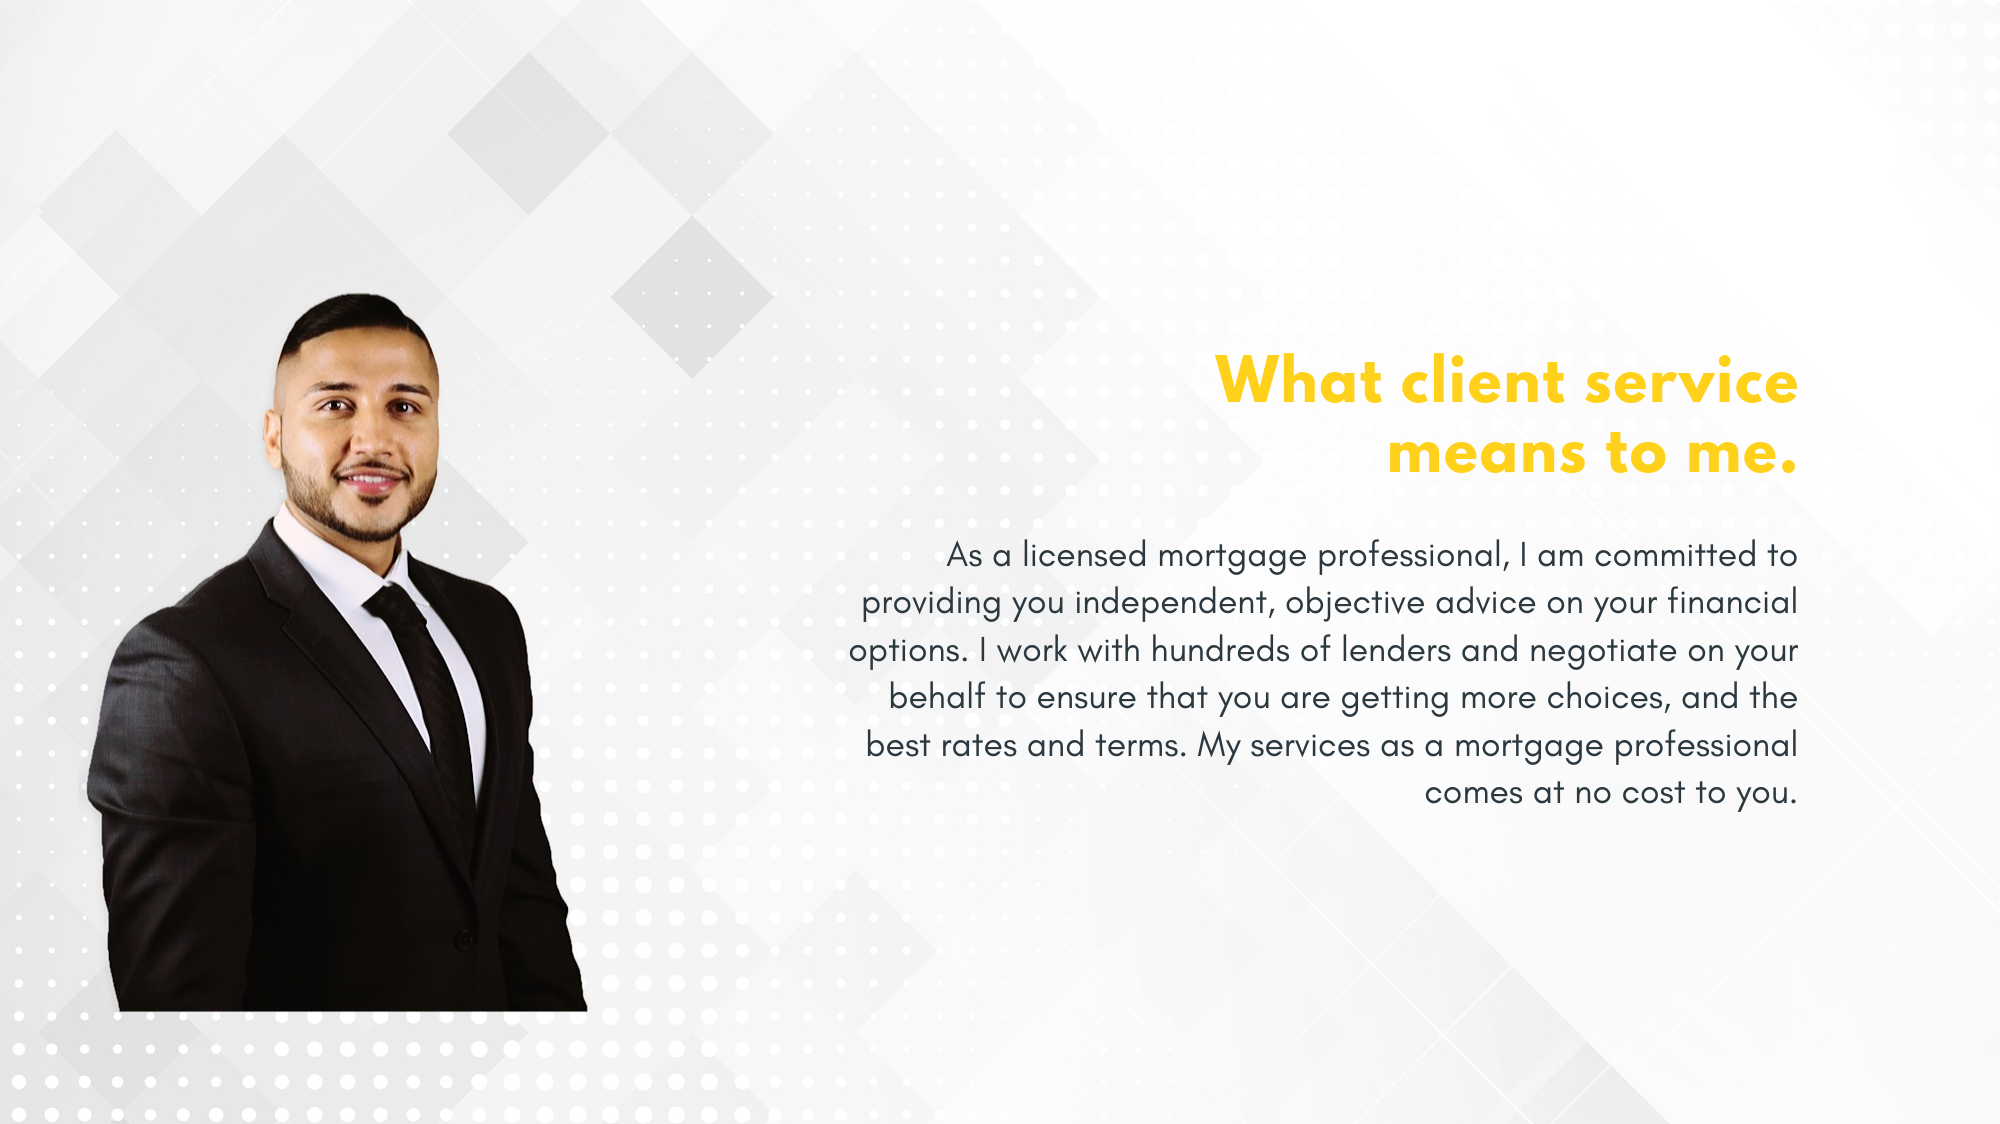 Mortgage Broker Client Service